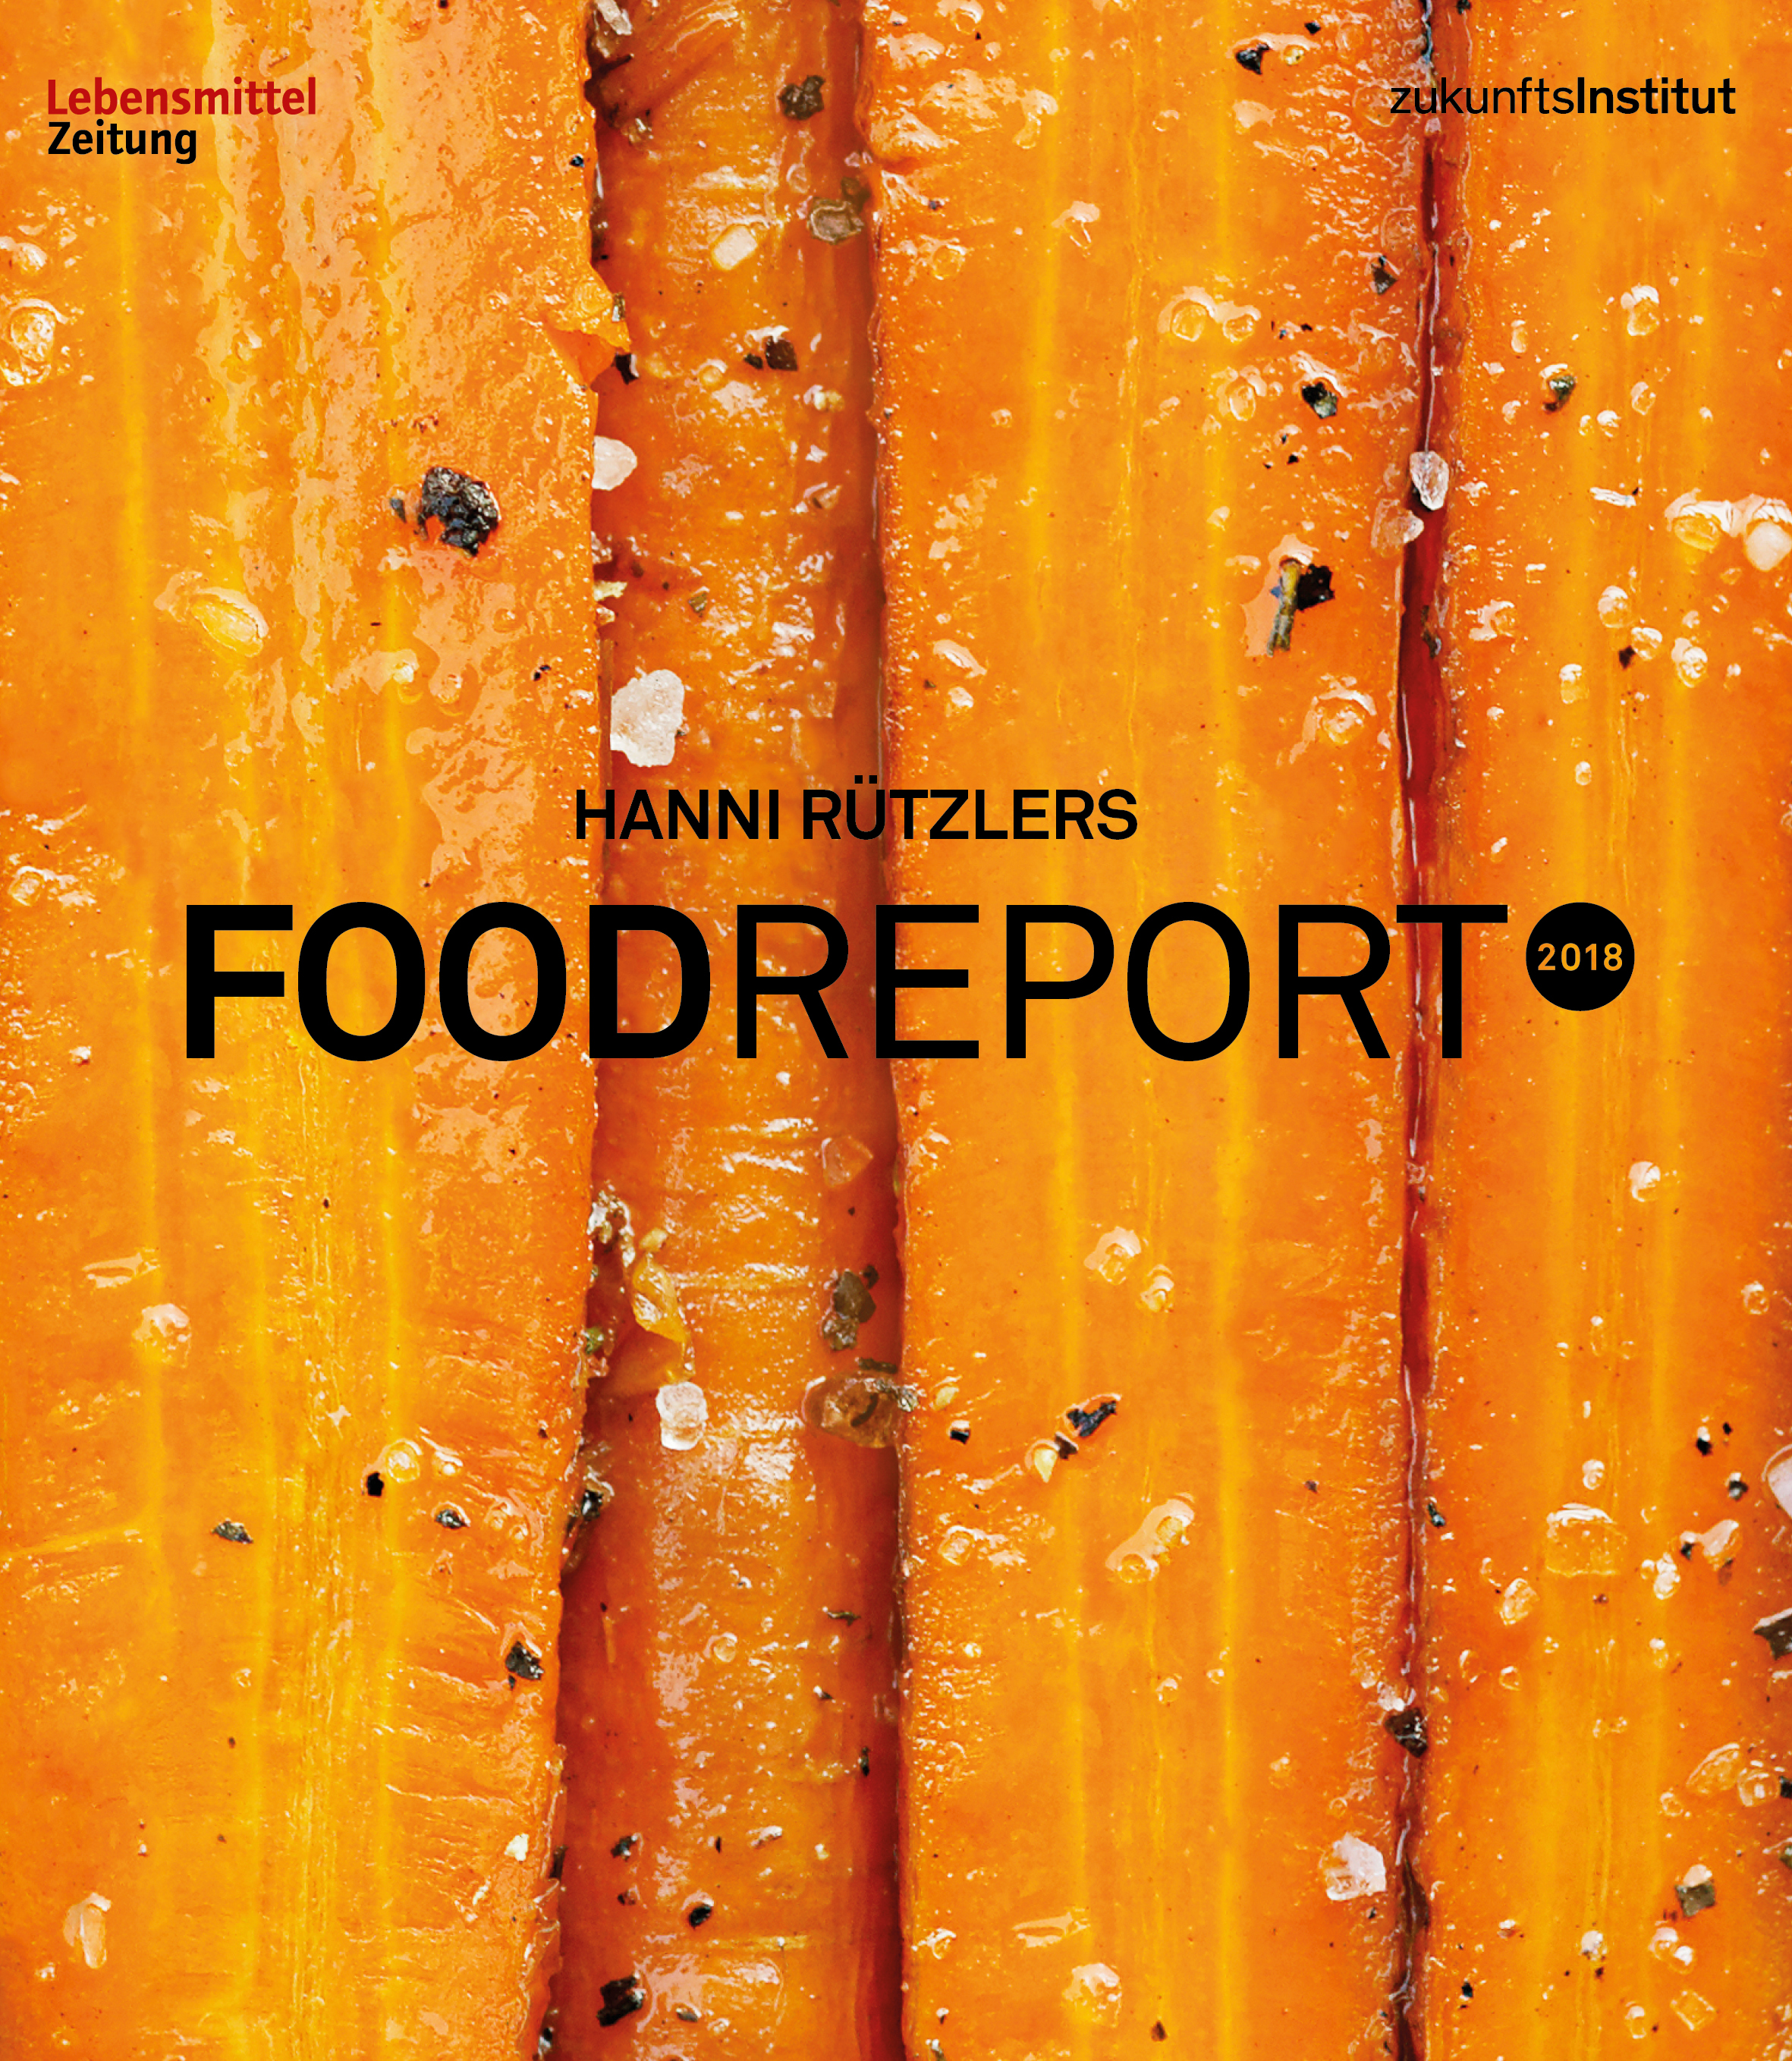 FoodReport 2018 - Hanni Rützler - Cover